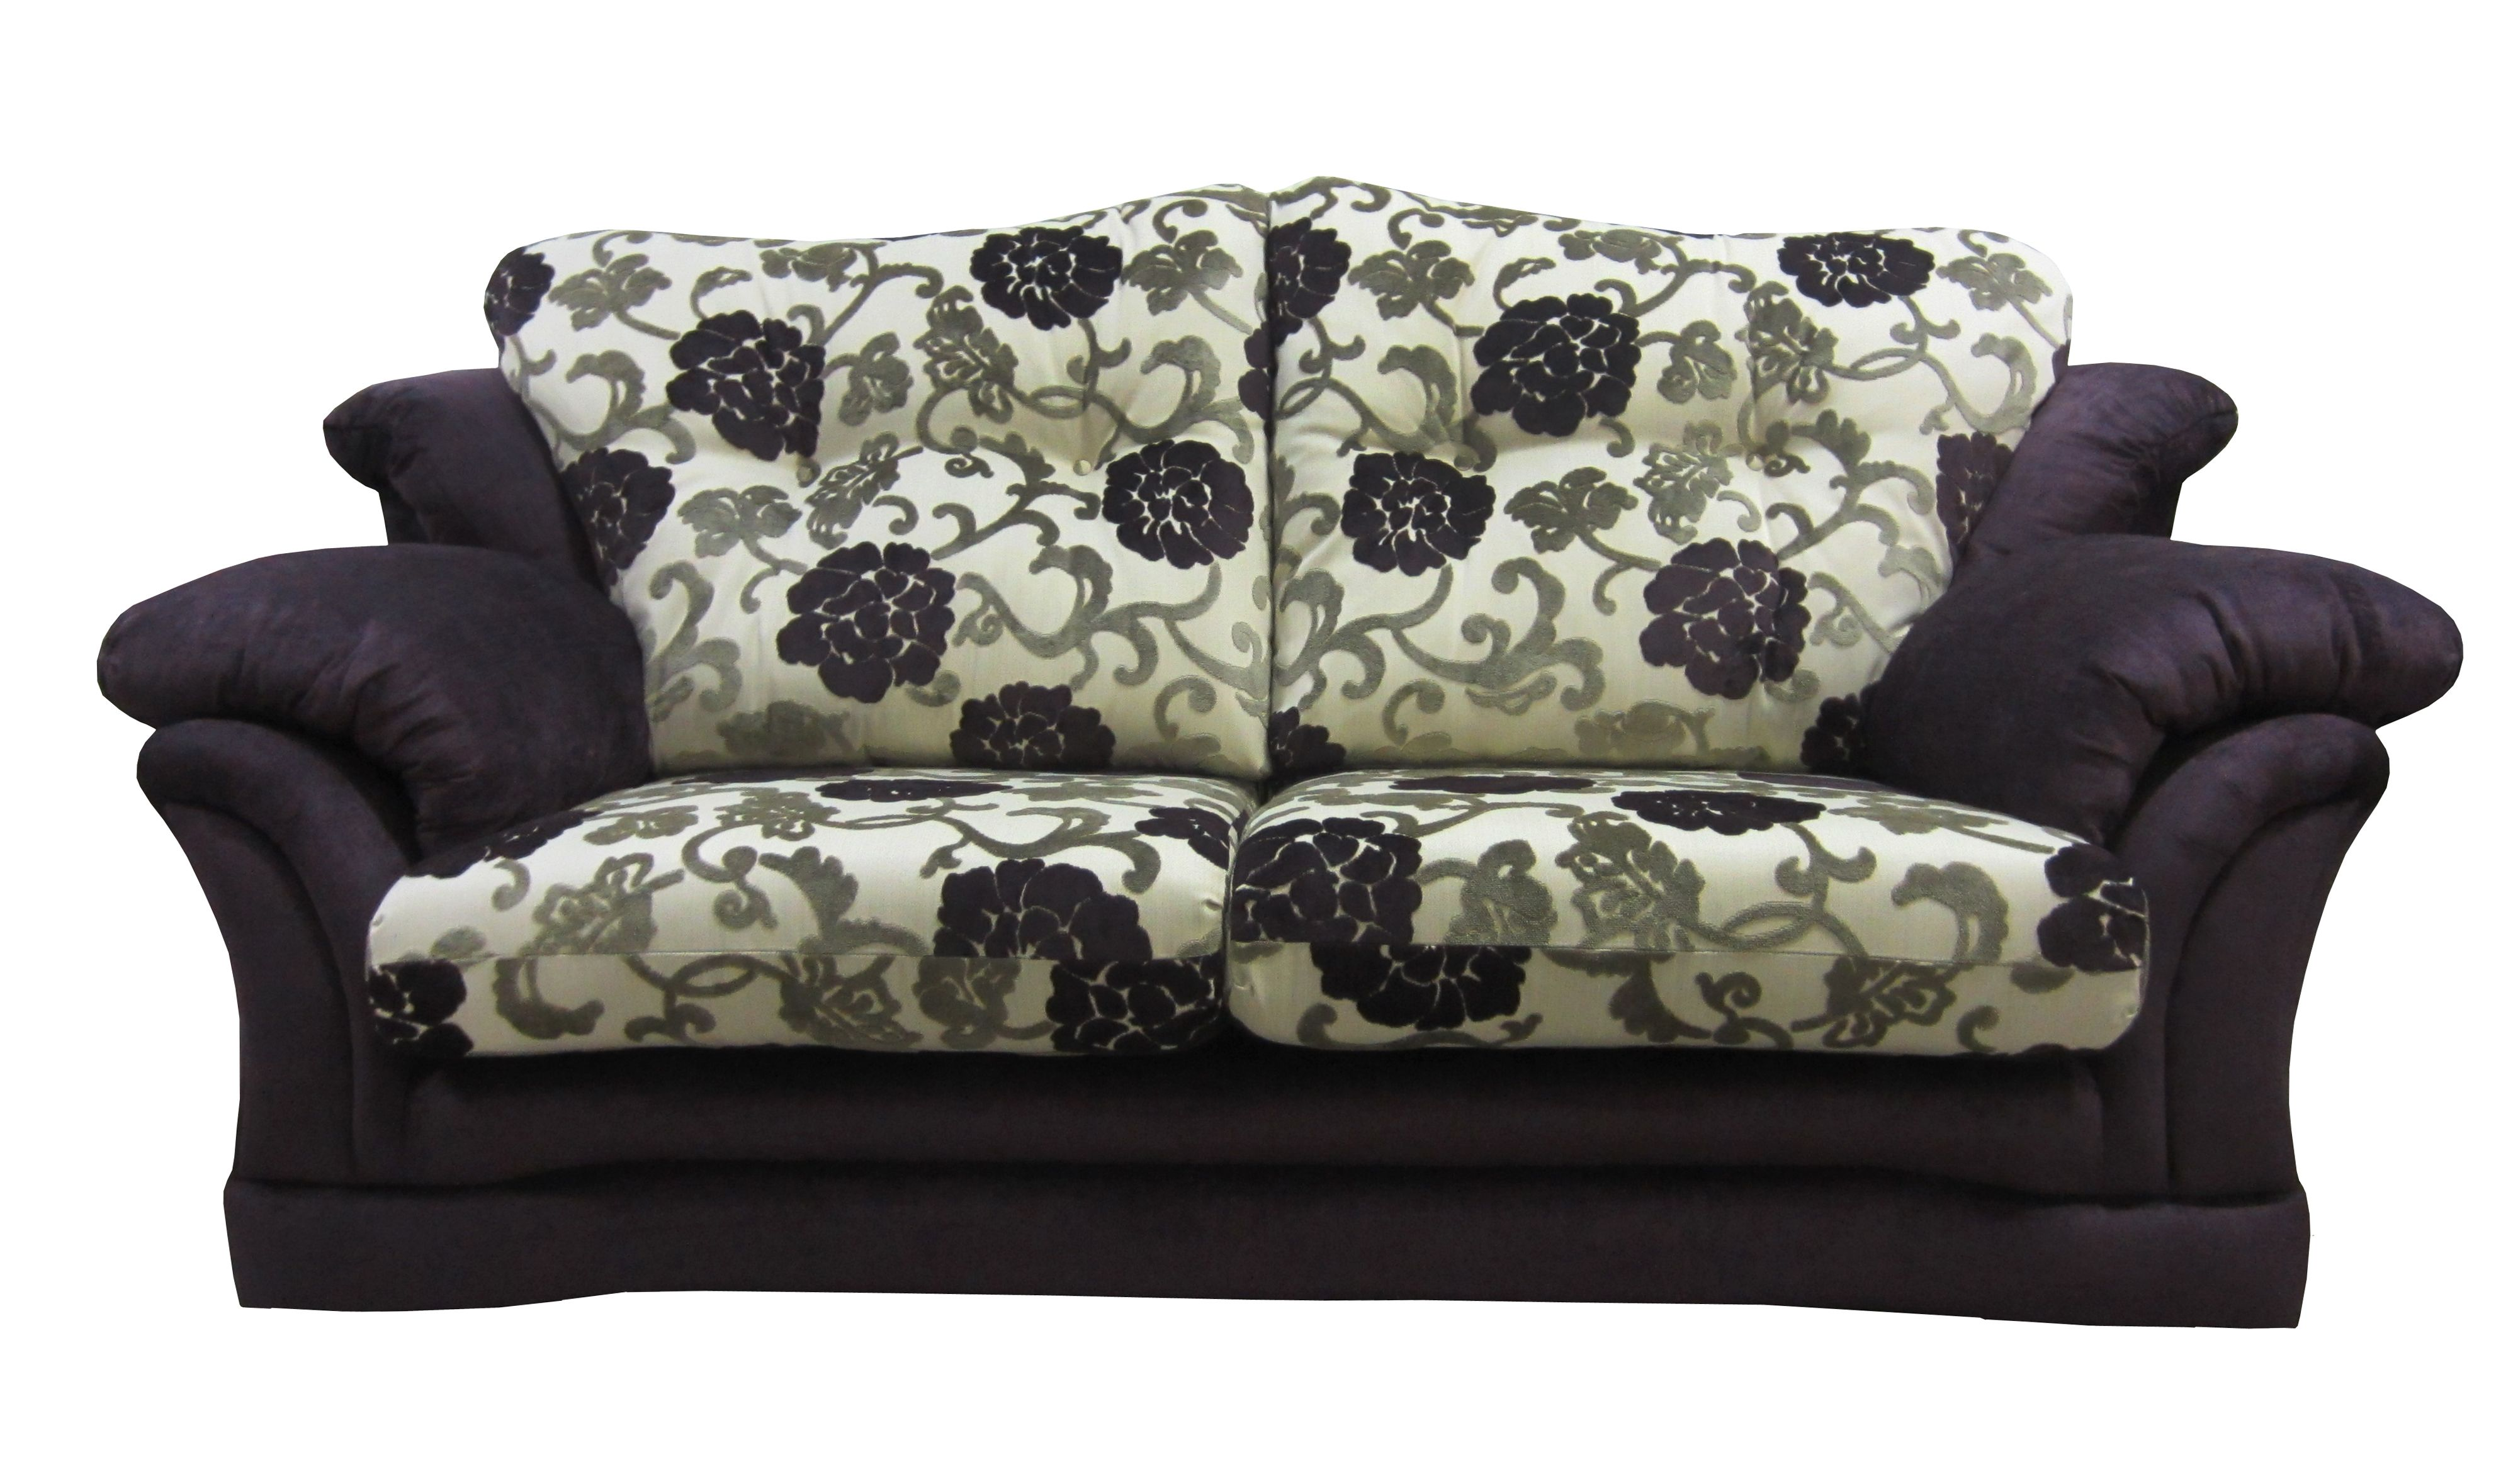 Milan 3 Seater Sofa Done In A Mixture Of A Floral And Plain Fabrics This Sofa Comes In A 2 Seater Or A 4 Seater Snuggle Chairs Matching Chairs 3 Seater Sofa